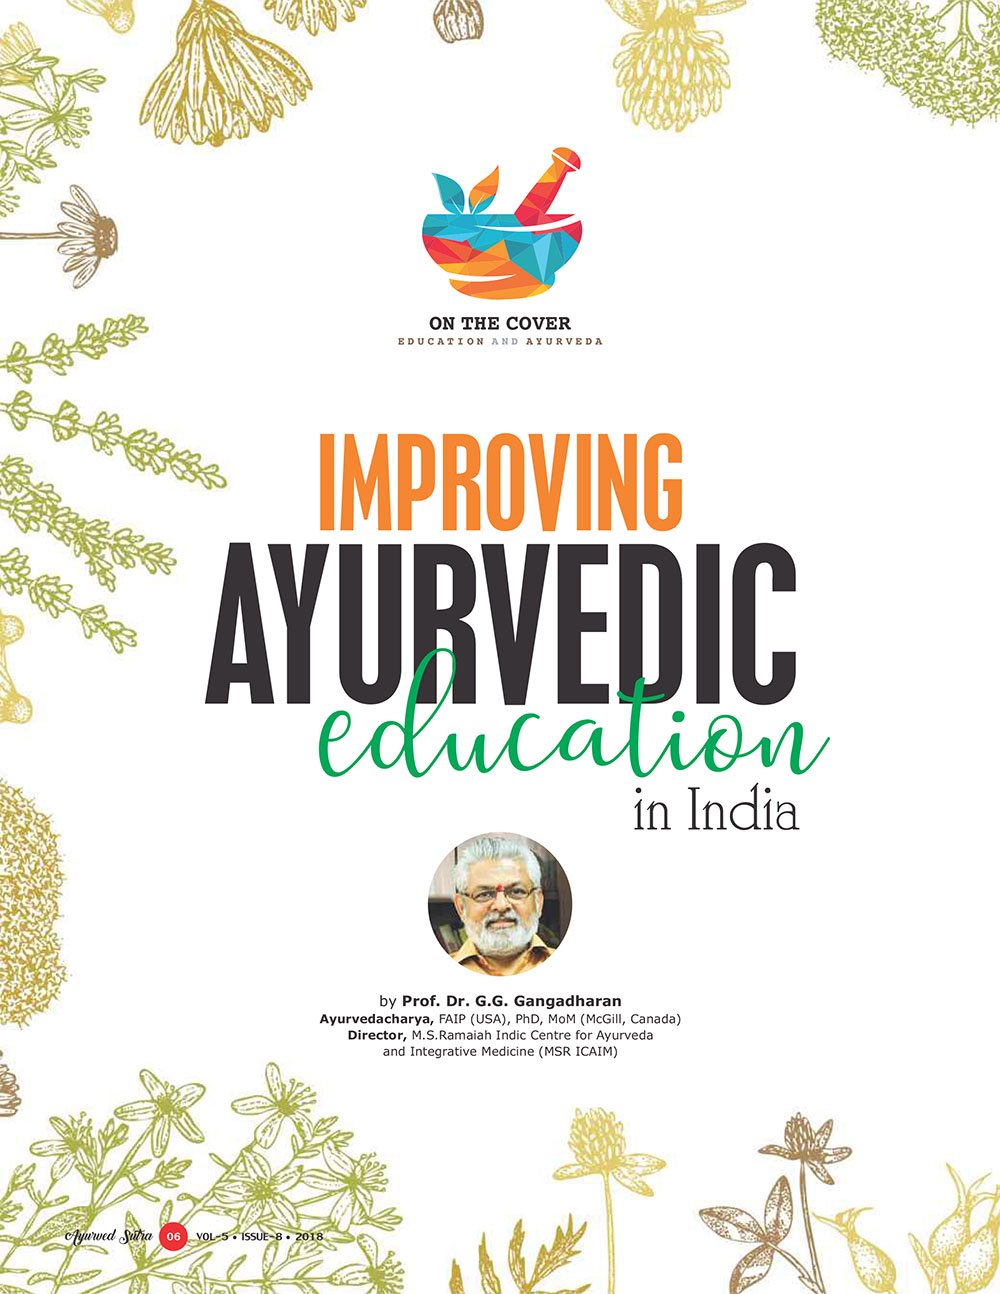 Ayurvedsutra Vol 05 issue 08 8 - Improving Ayurvedic Education in India